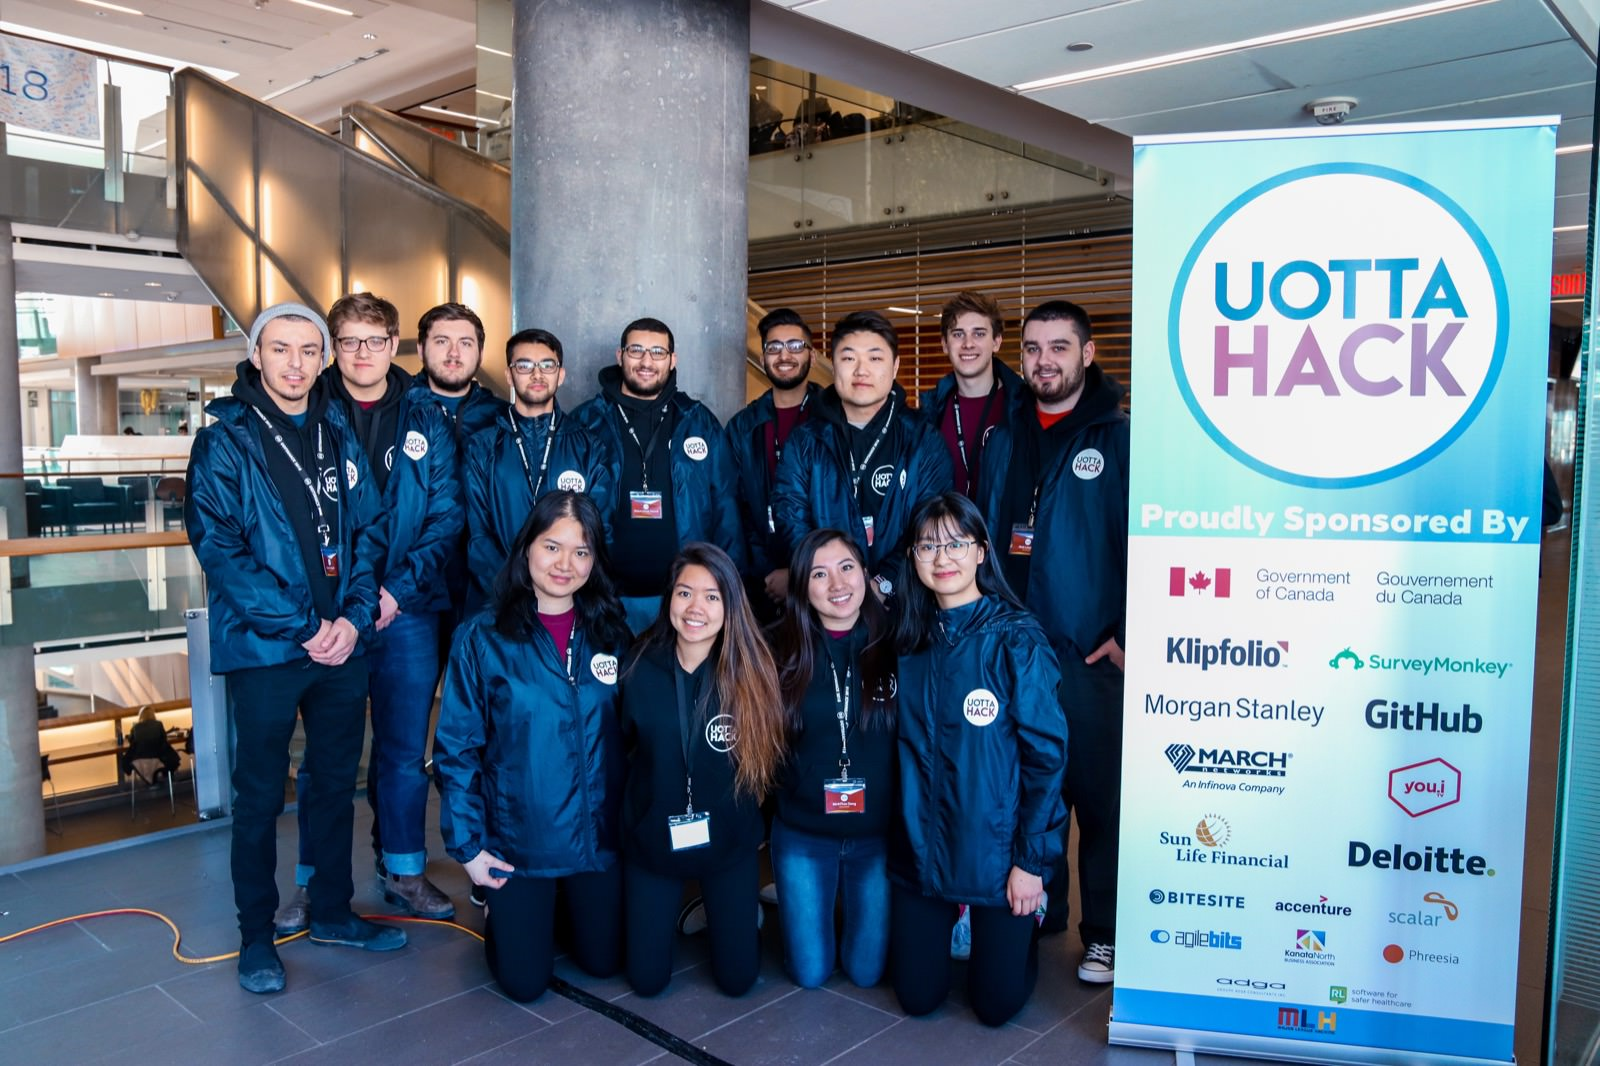 The uOttaHack Founding Team